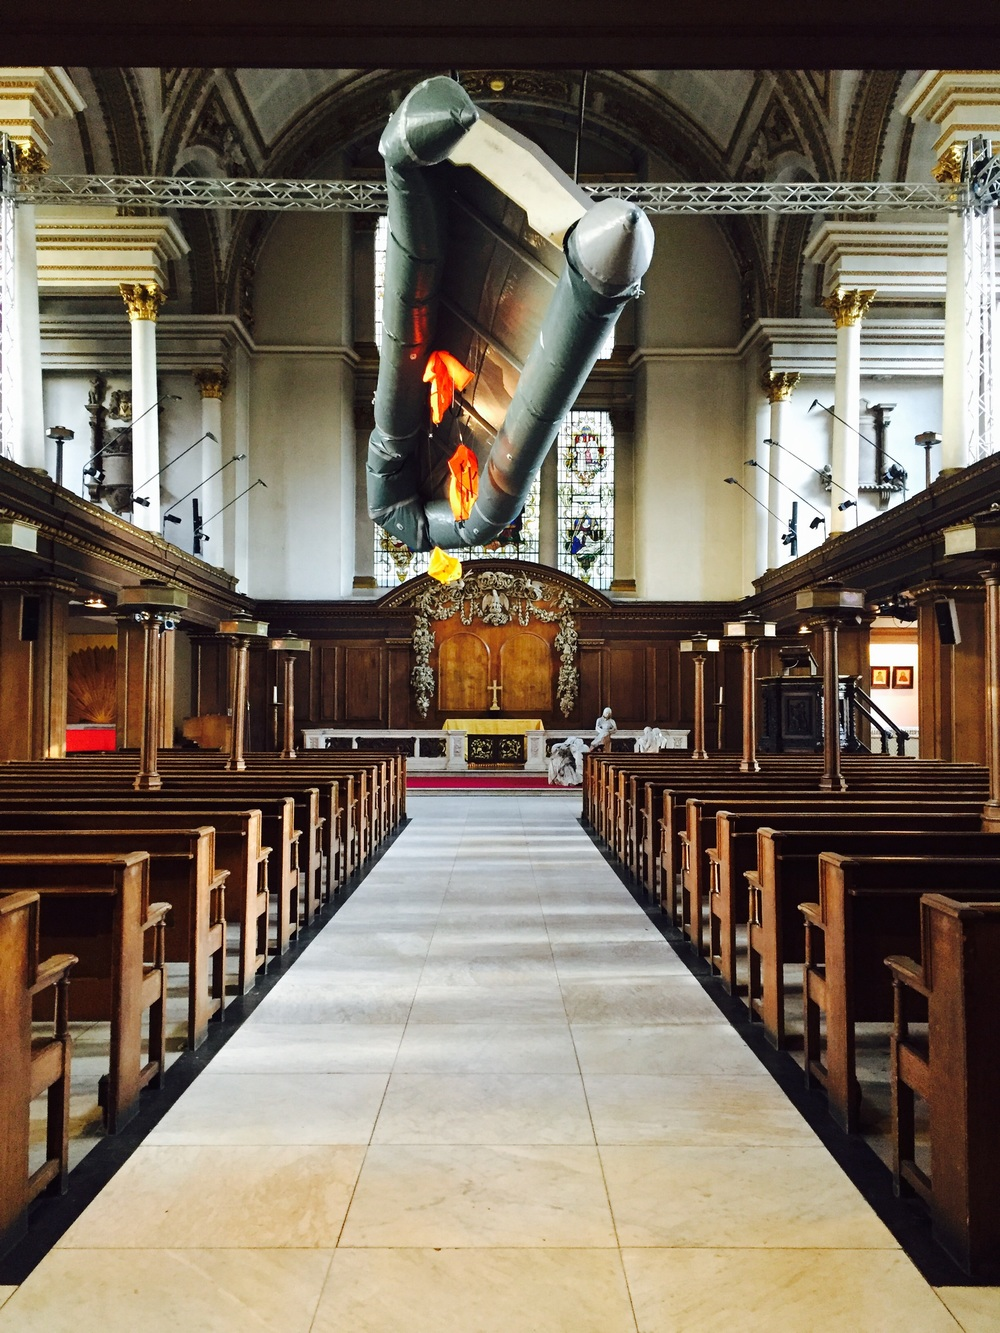 This is St James's in London's Piccadilly Circus, where the artist Arabella Dorman hung an actual refugee dingy from the rafters as literal reminder of the tragedy of people looking for sanctuary. Read more about the installation called  Flight  on    BBC.